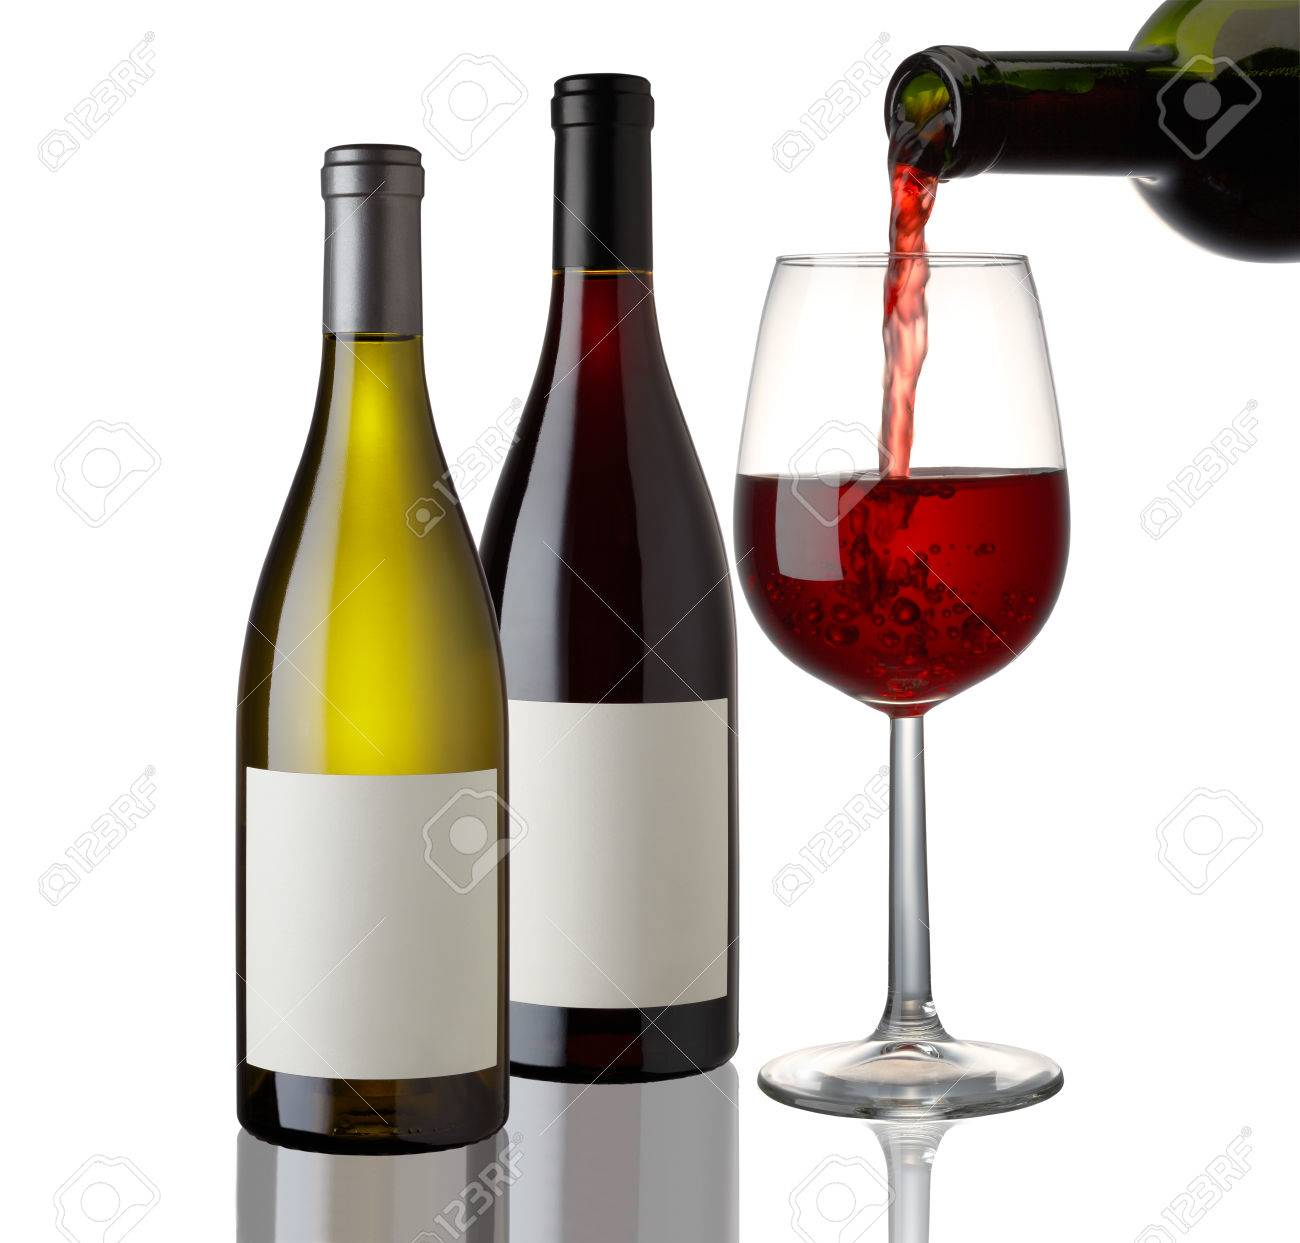 Red and White Wine bottle and glass on white background - 46197947